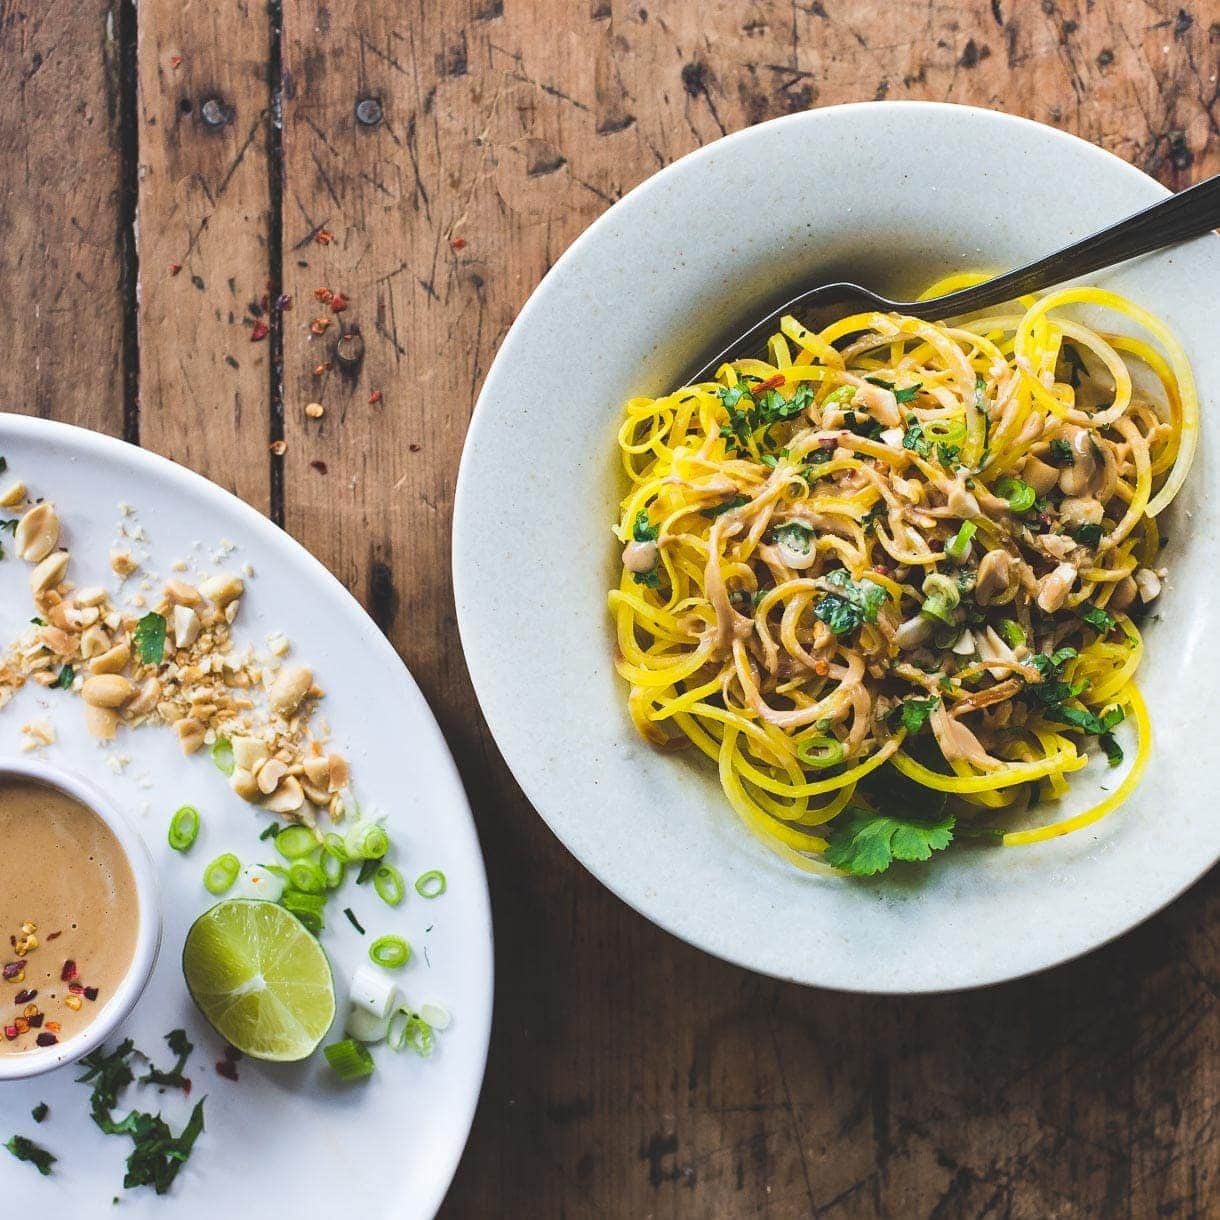 Golden Beet Noodles with Spicy Peanut Sauce